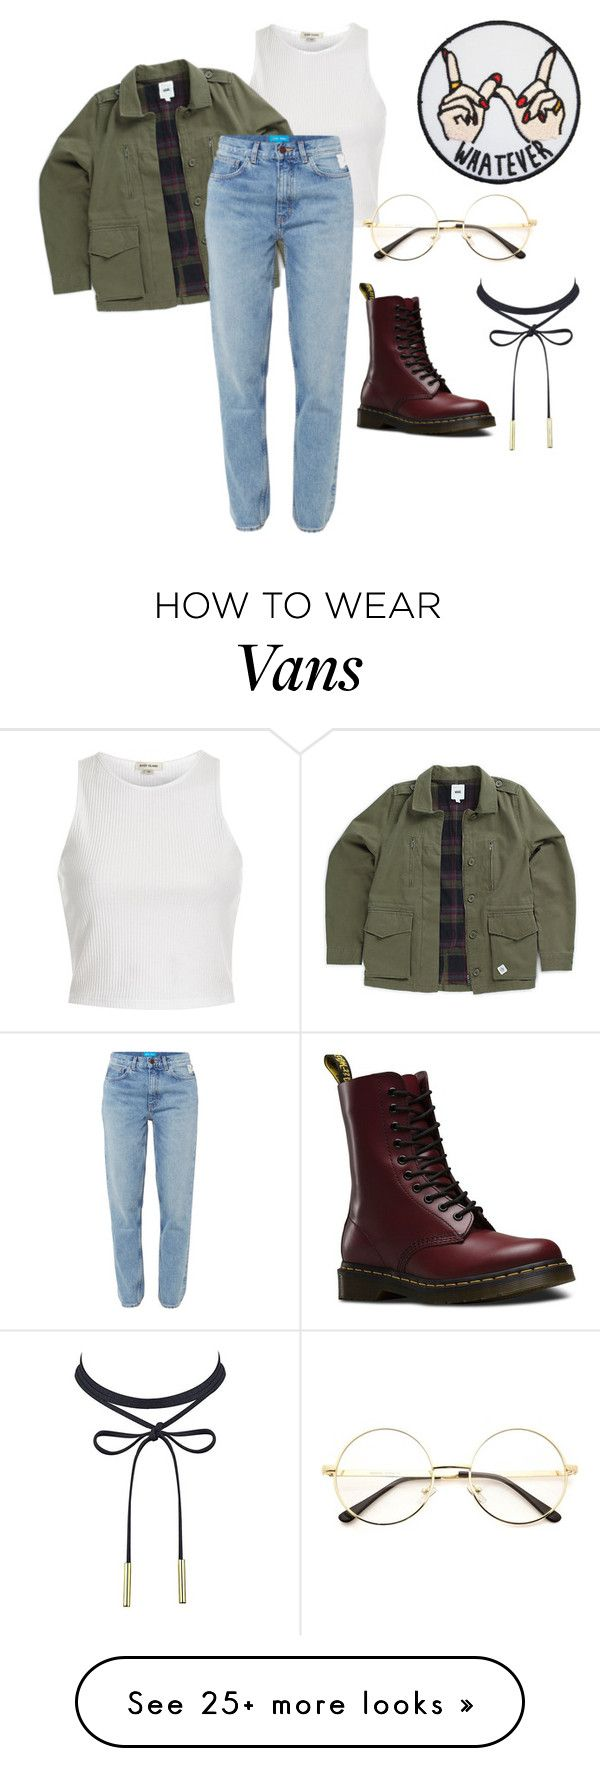 """☕️"" by fashionidea5 on Polyvore featuring River Island, Vans, M.i.h Jeans and Dr. Martens"